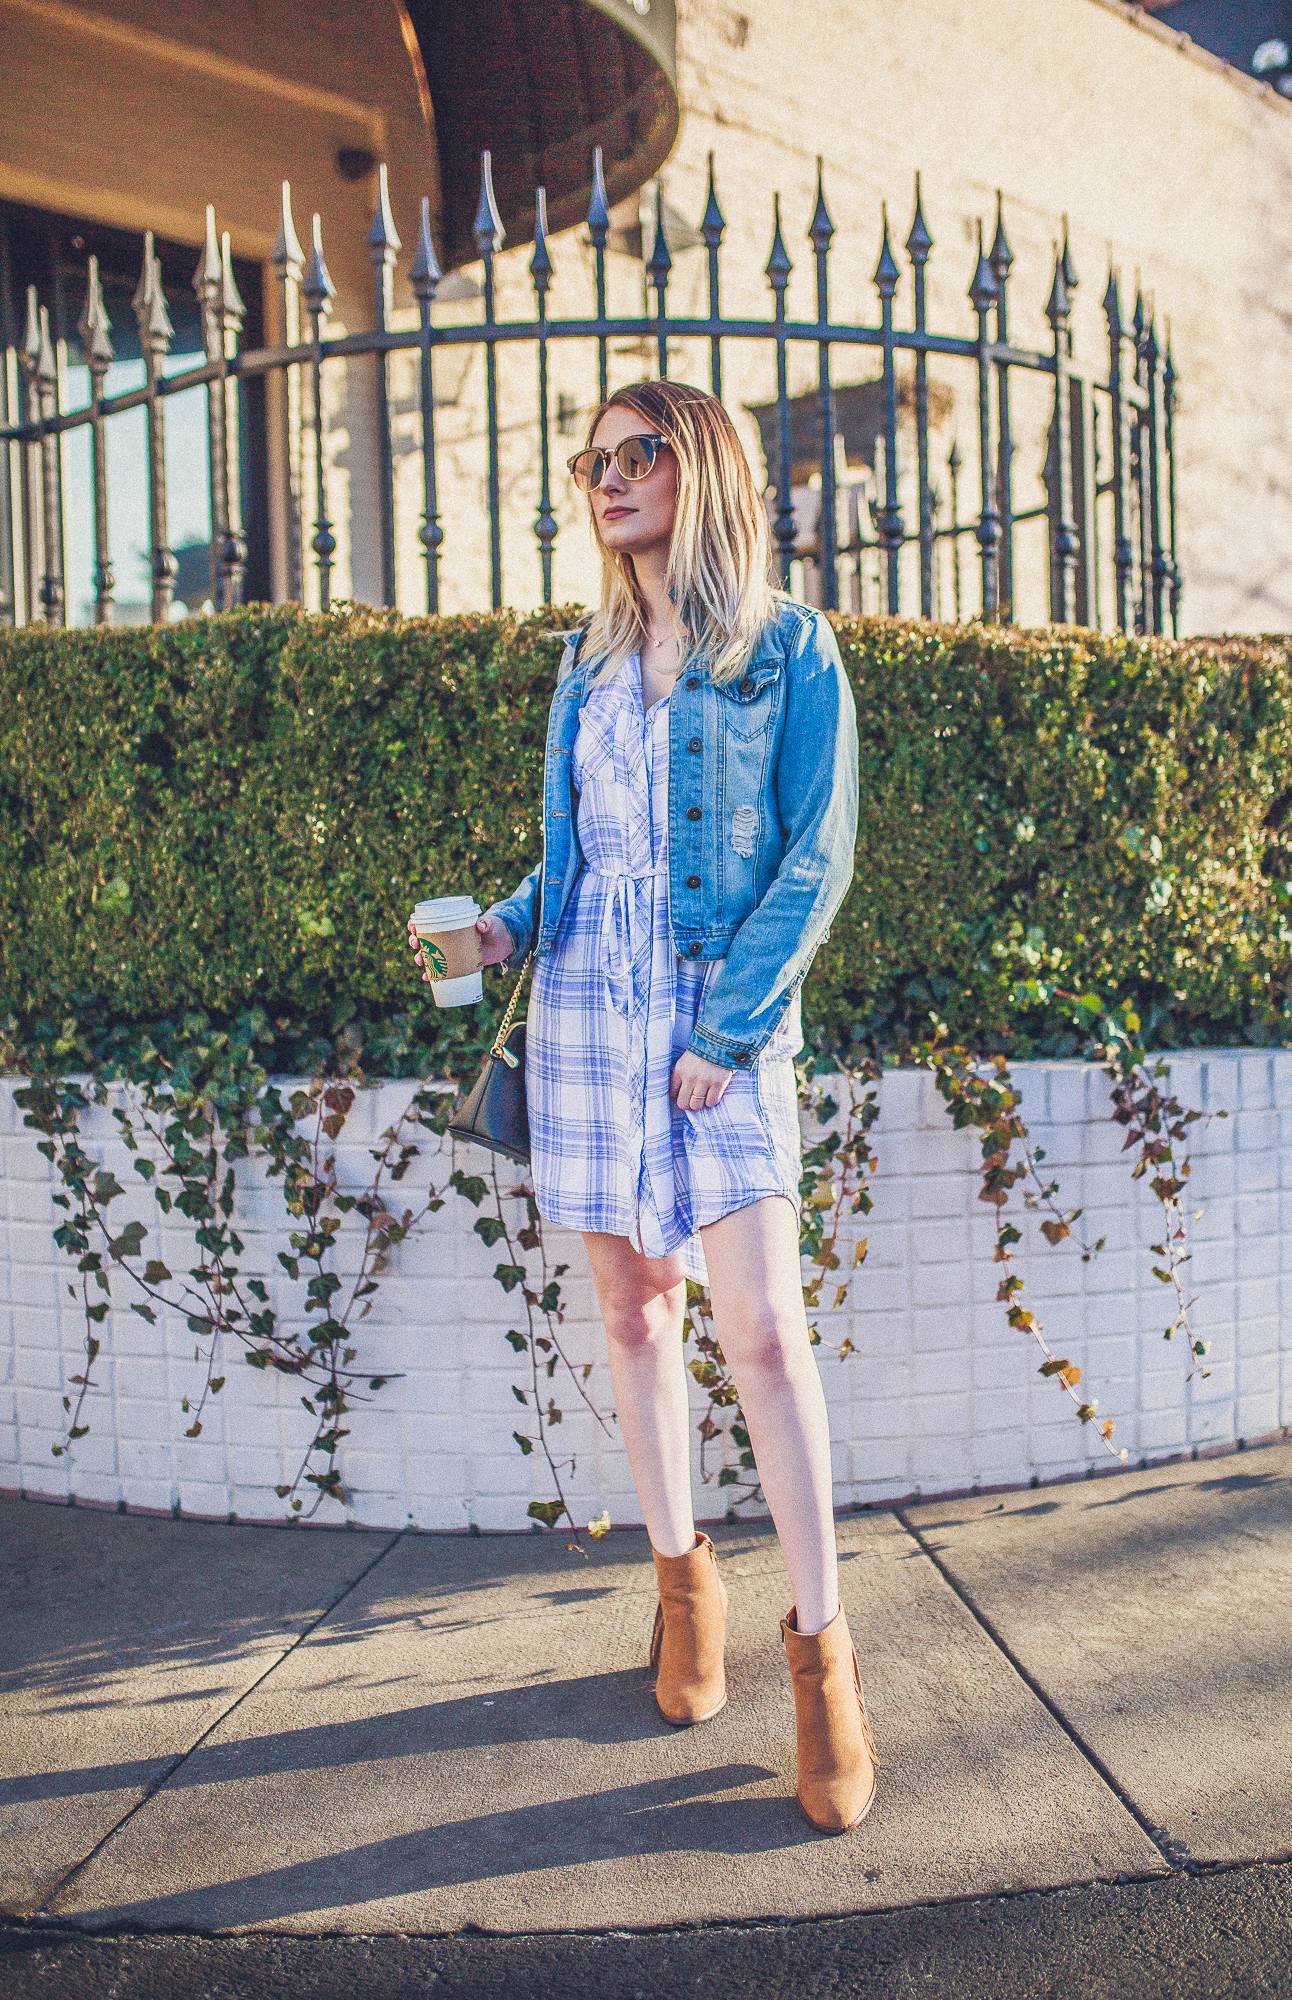 Plaid Year Round | Spring and Summer 2018 Trend . Outfit Inspiration by North Carolina fashion and lifestyle blogger Jessica Linn from Linn Style.